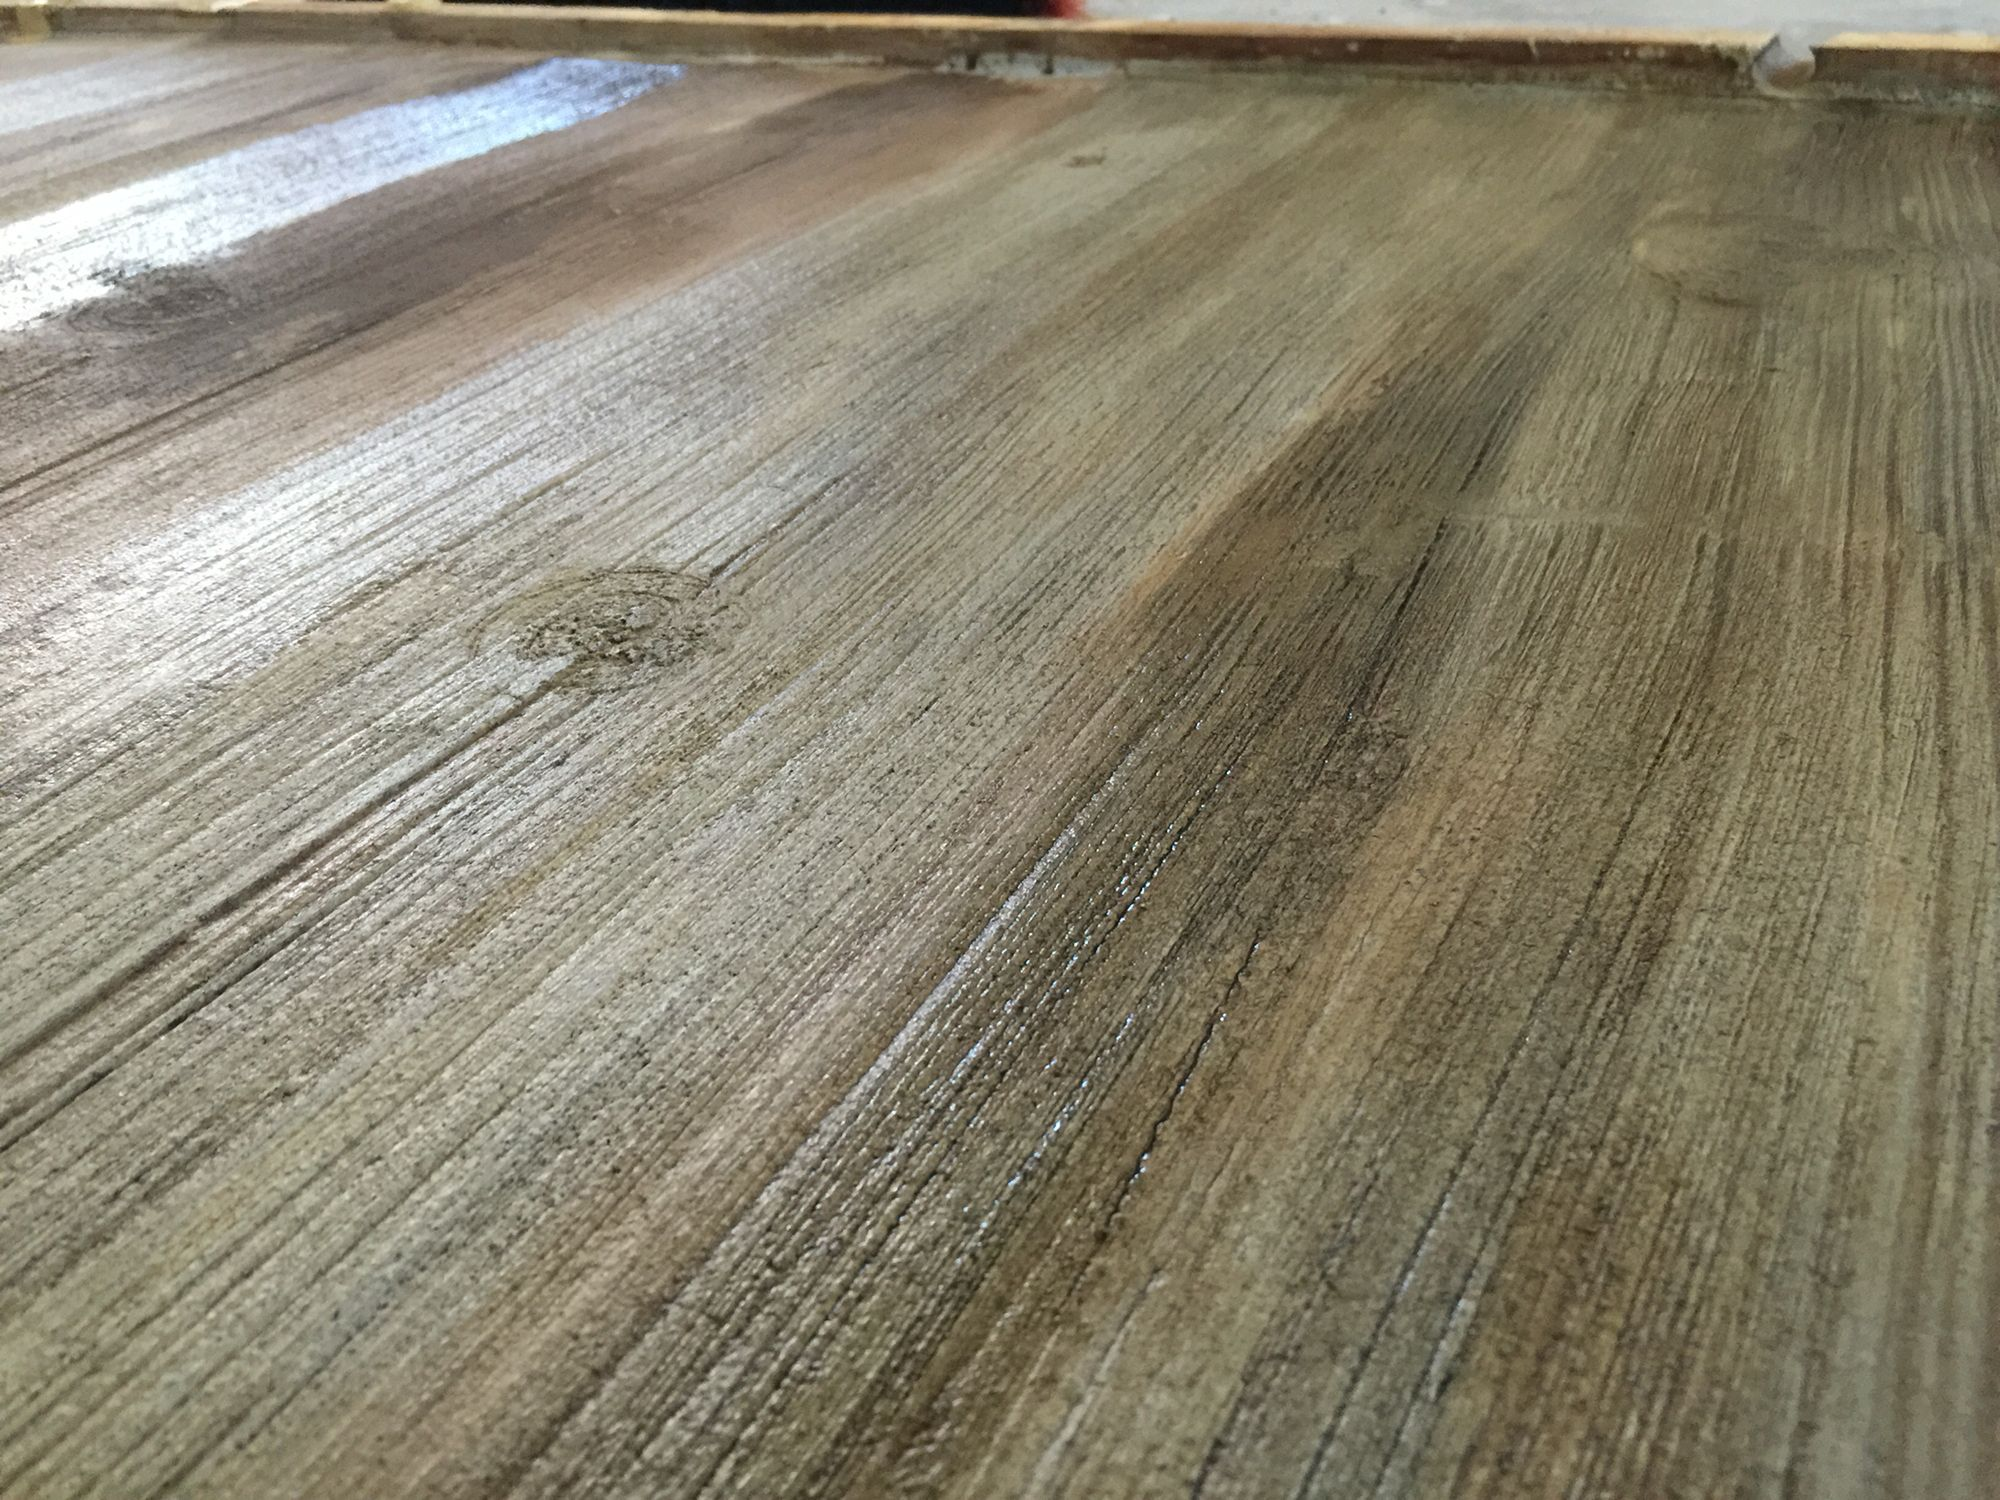 Stained Concrete Floors That Look Like Barn Wood To Get The Color You Must Stain Over A Micro Topping I Used Mixture Of Three Parts Water One Part